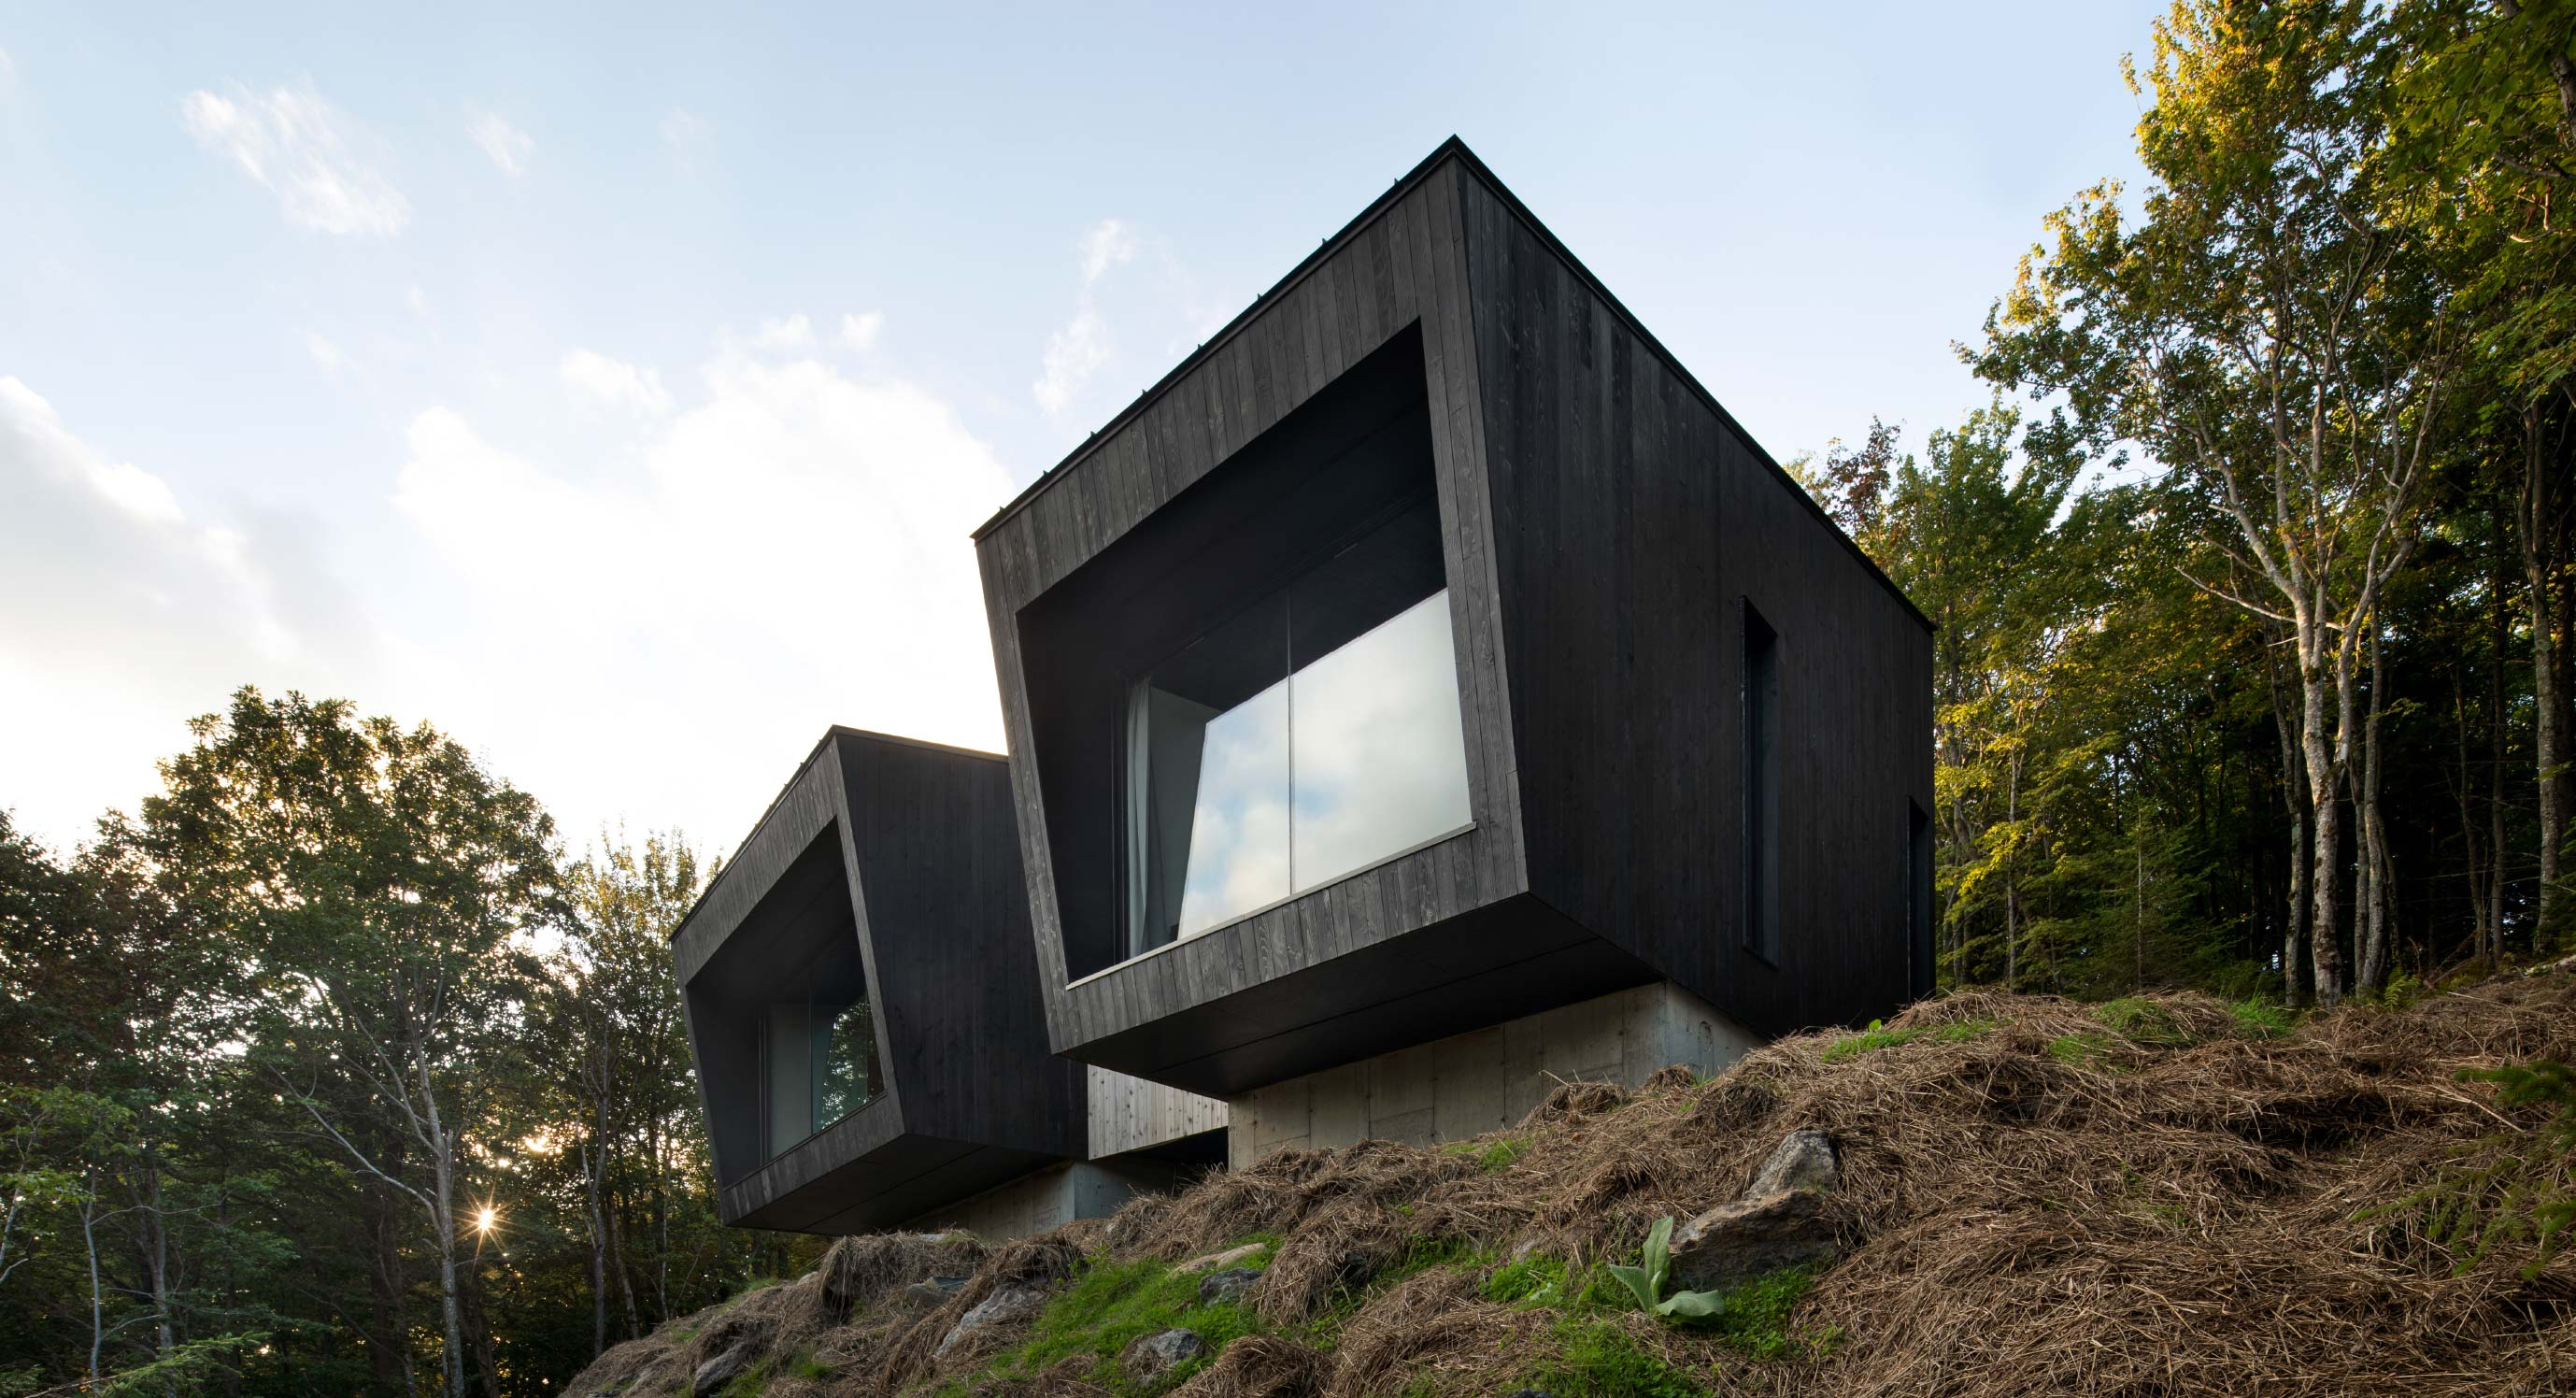 Check Out The Panoramic Views of Naturehumaine's La Binocle Cabin